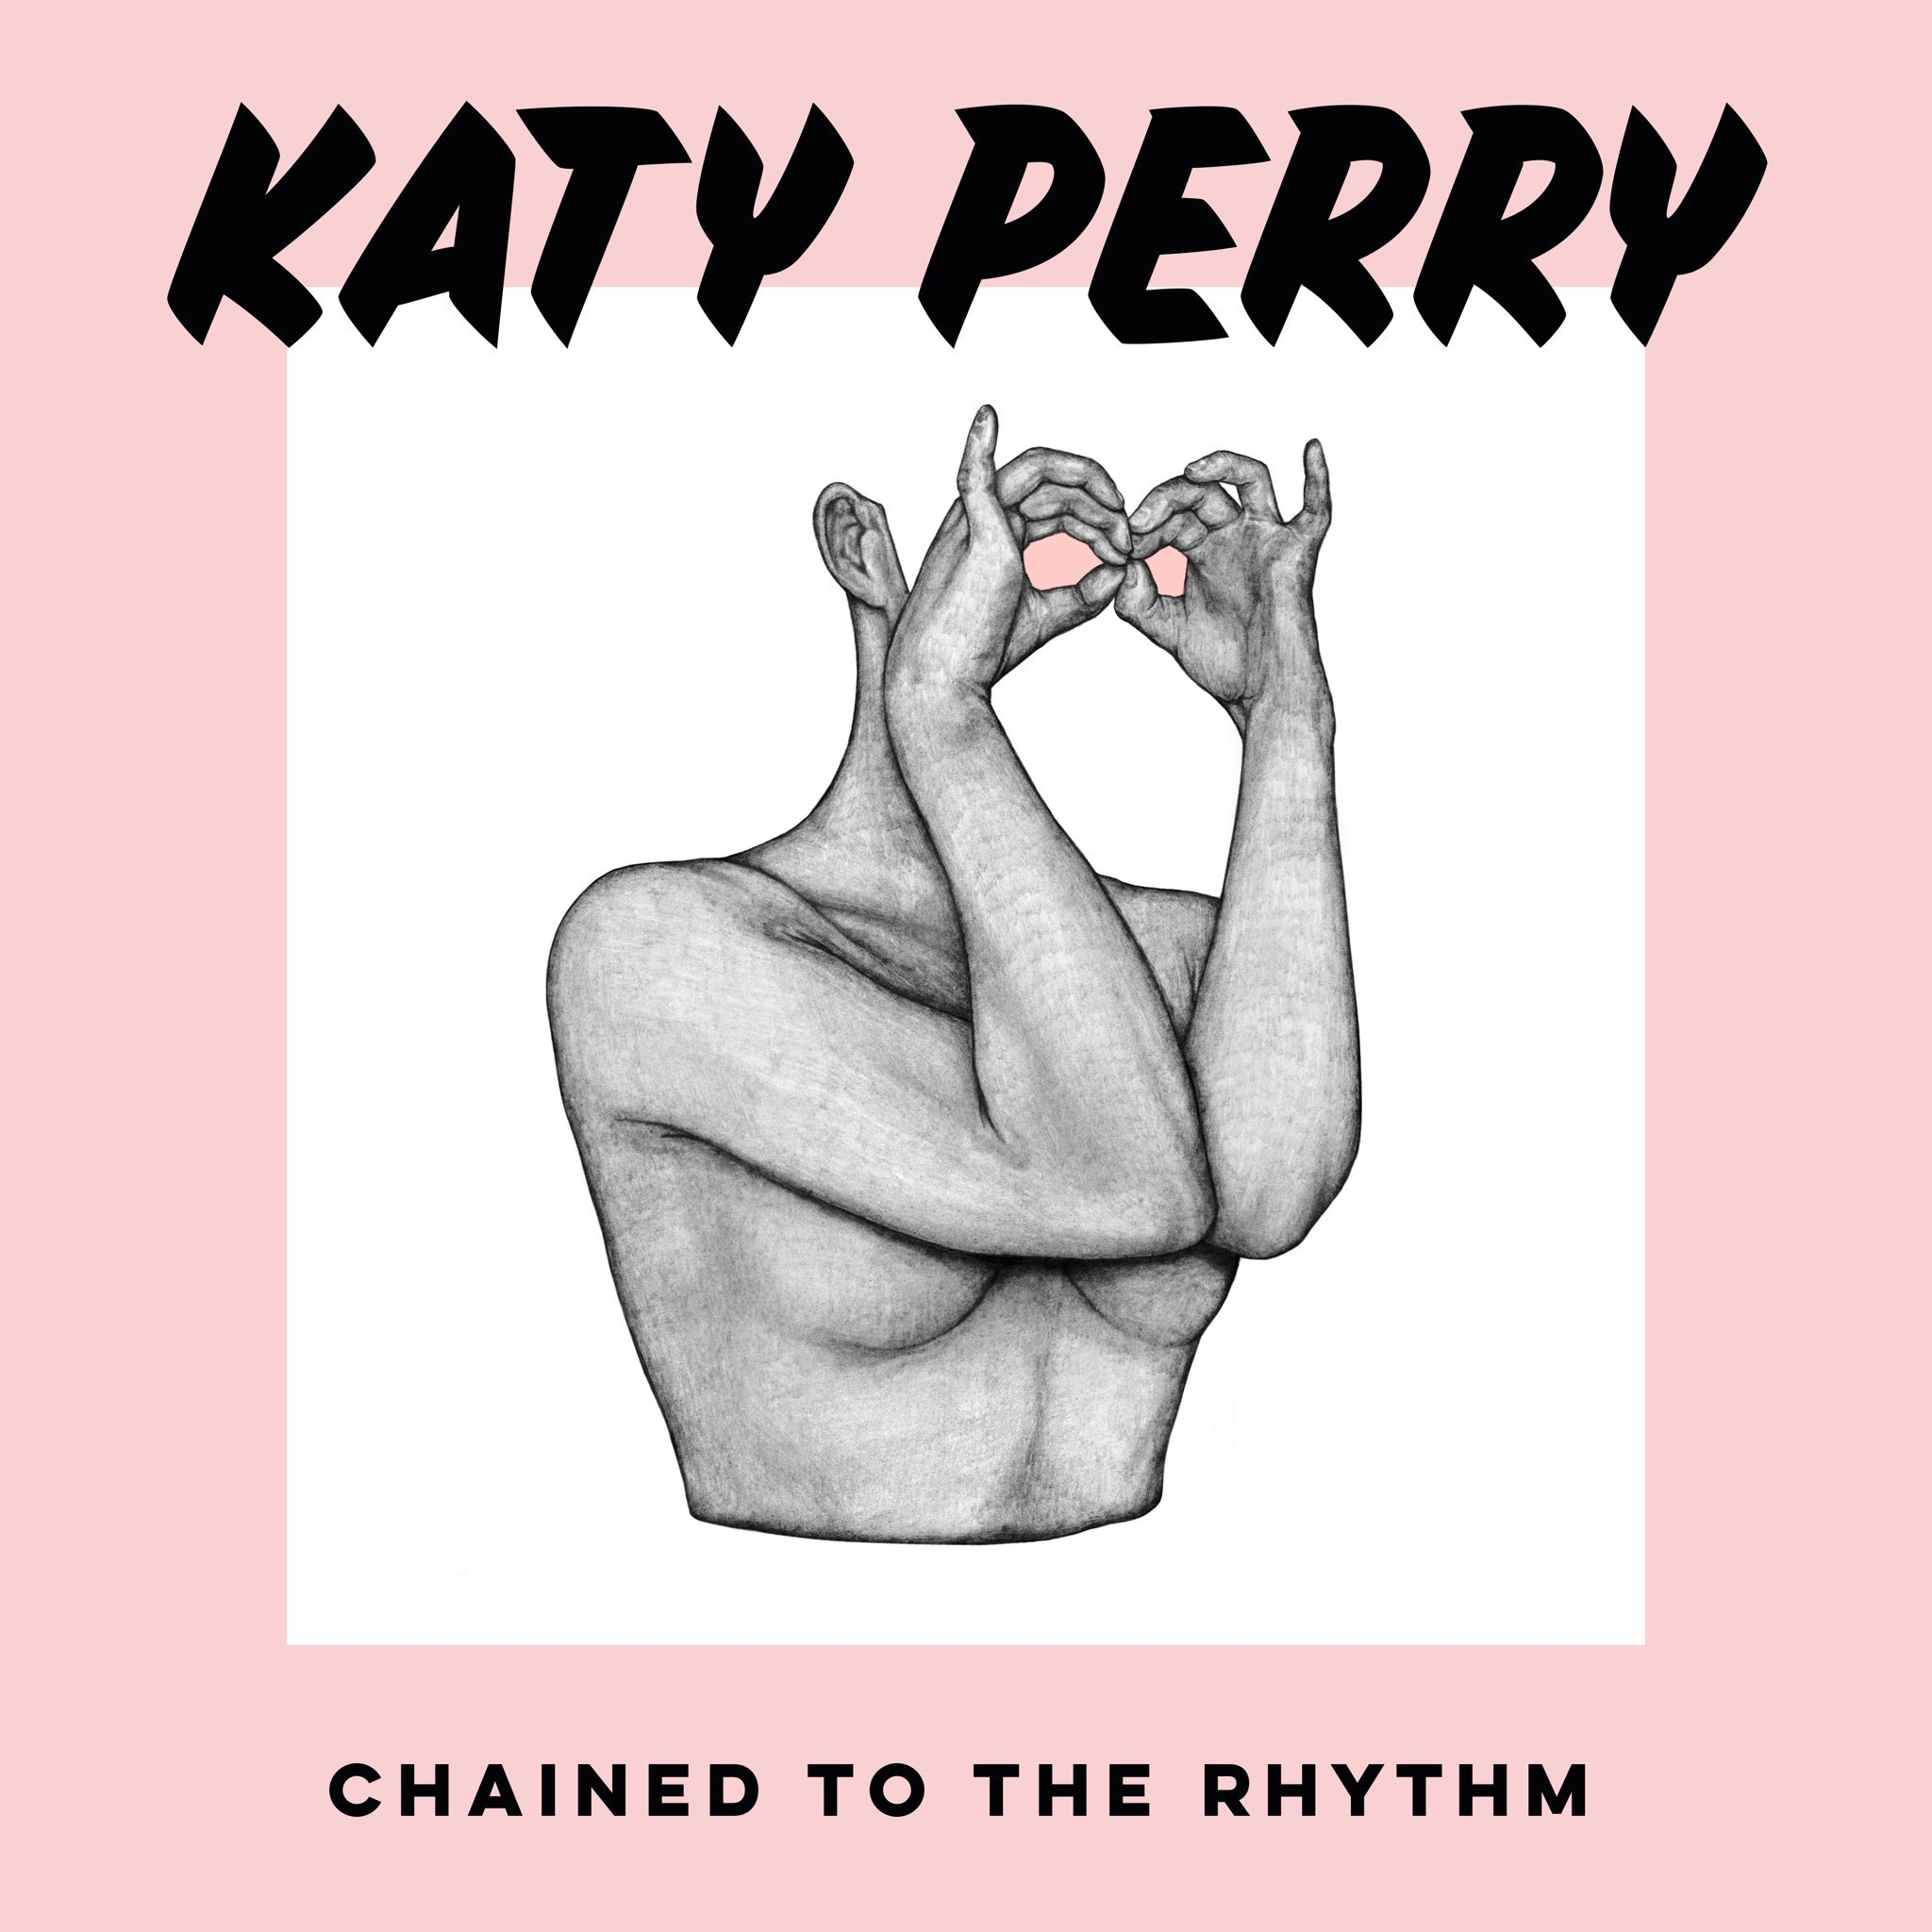 ONE HOUR UNTIL #CHAINEDTOTHERHYTHM. Cover art by #FrederikHeyman https://t.co/pgZDaPBntO